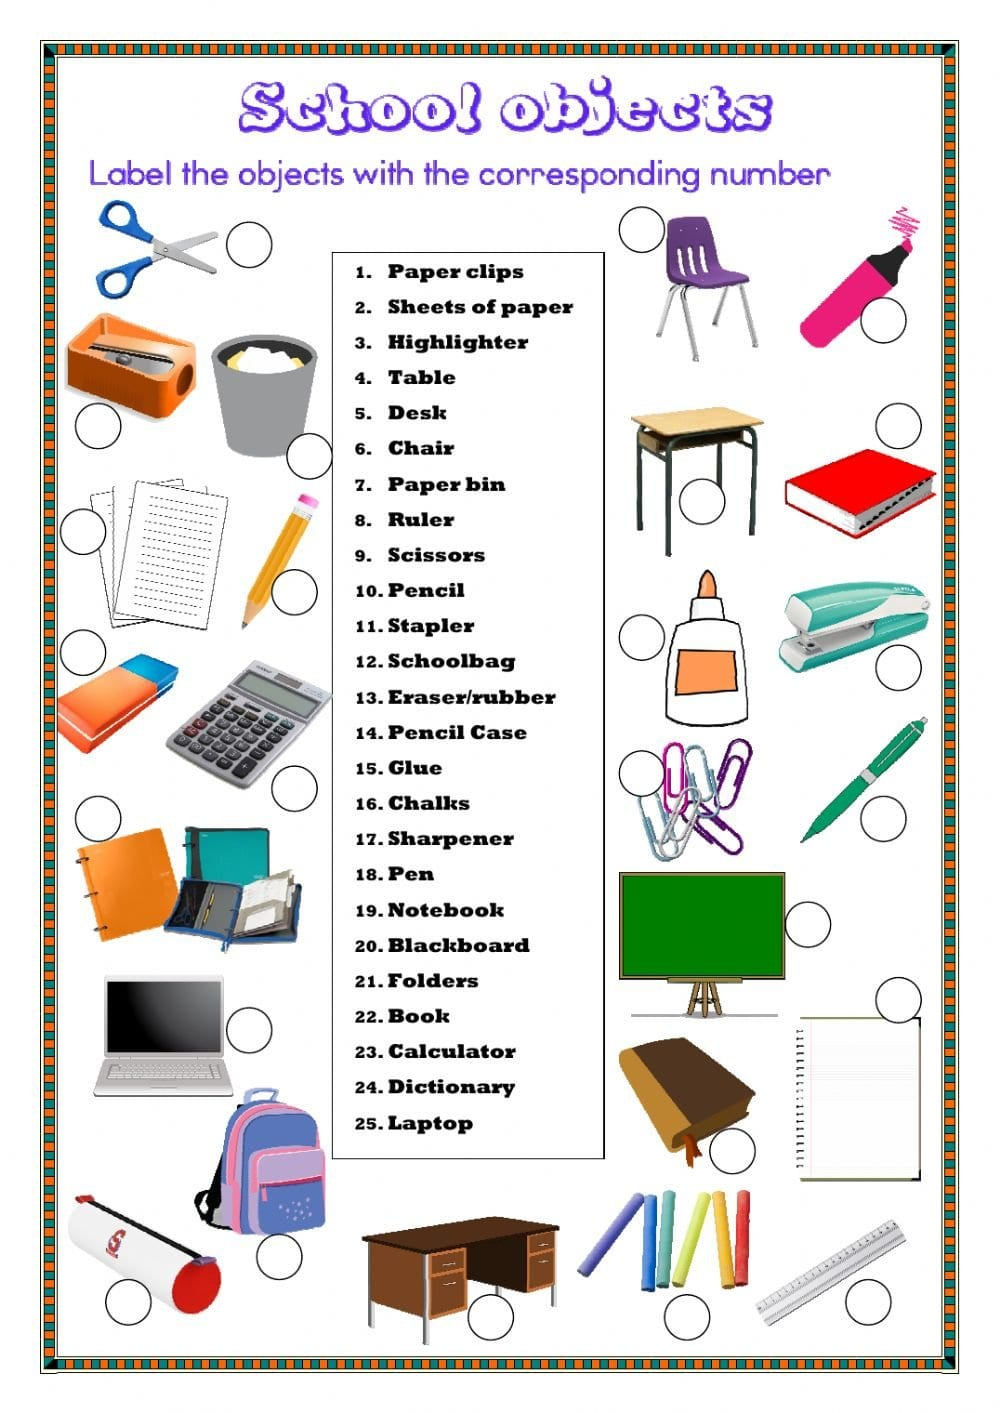 School Objects Interactive Worksheet Intended For Label School Supplies Worksheet